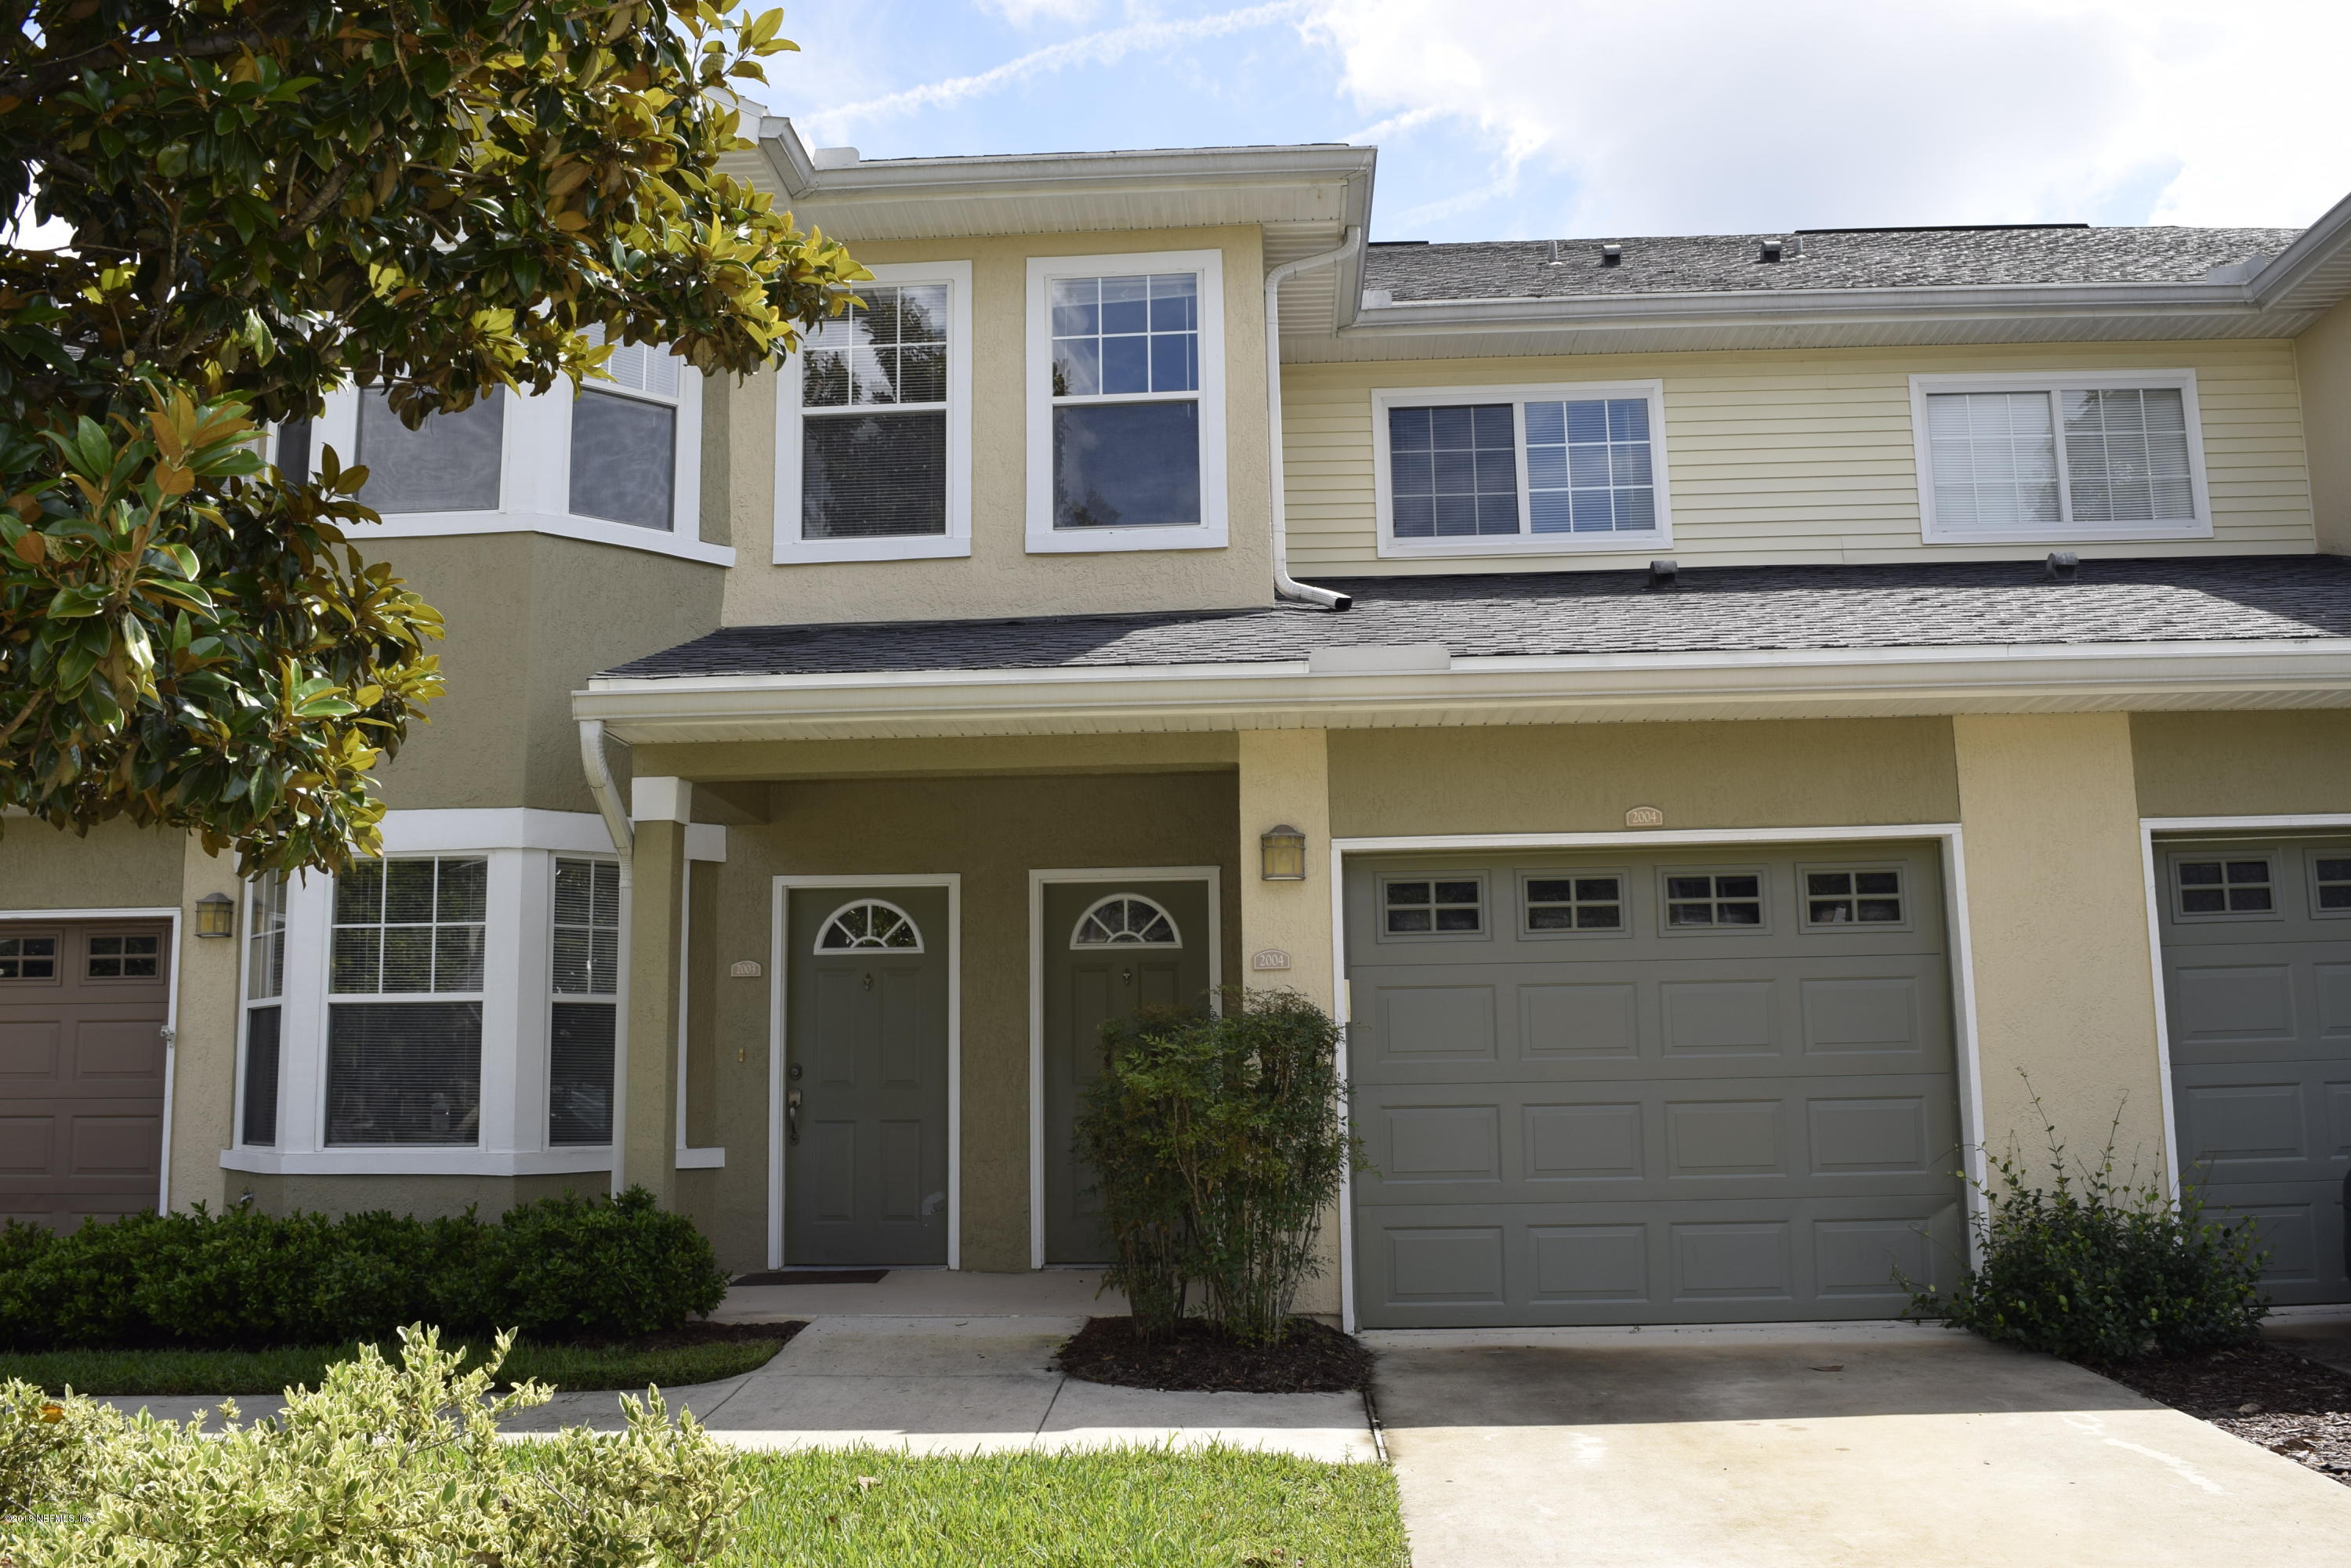 3750 SILVER BLUFF, ORANGE PARK, FLORIDA 32065, 3 Bedrooms Bedrooms, ,2 BathroomsBathrooms,Residential - condos/townhomes,For sale,SILVER BLUFF,944149